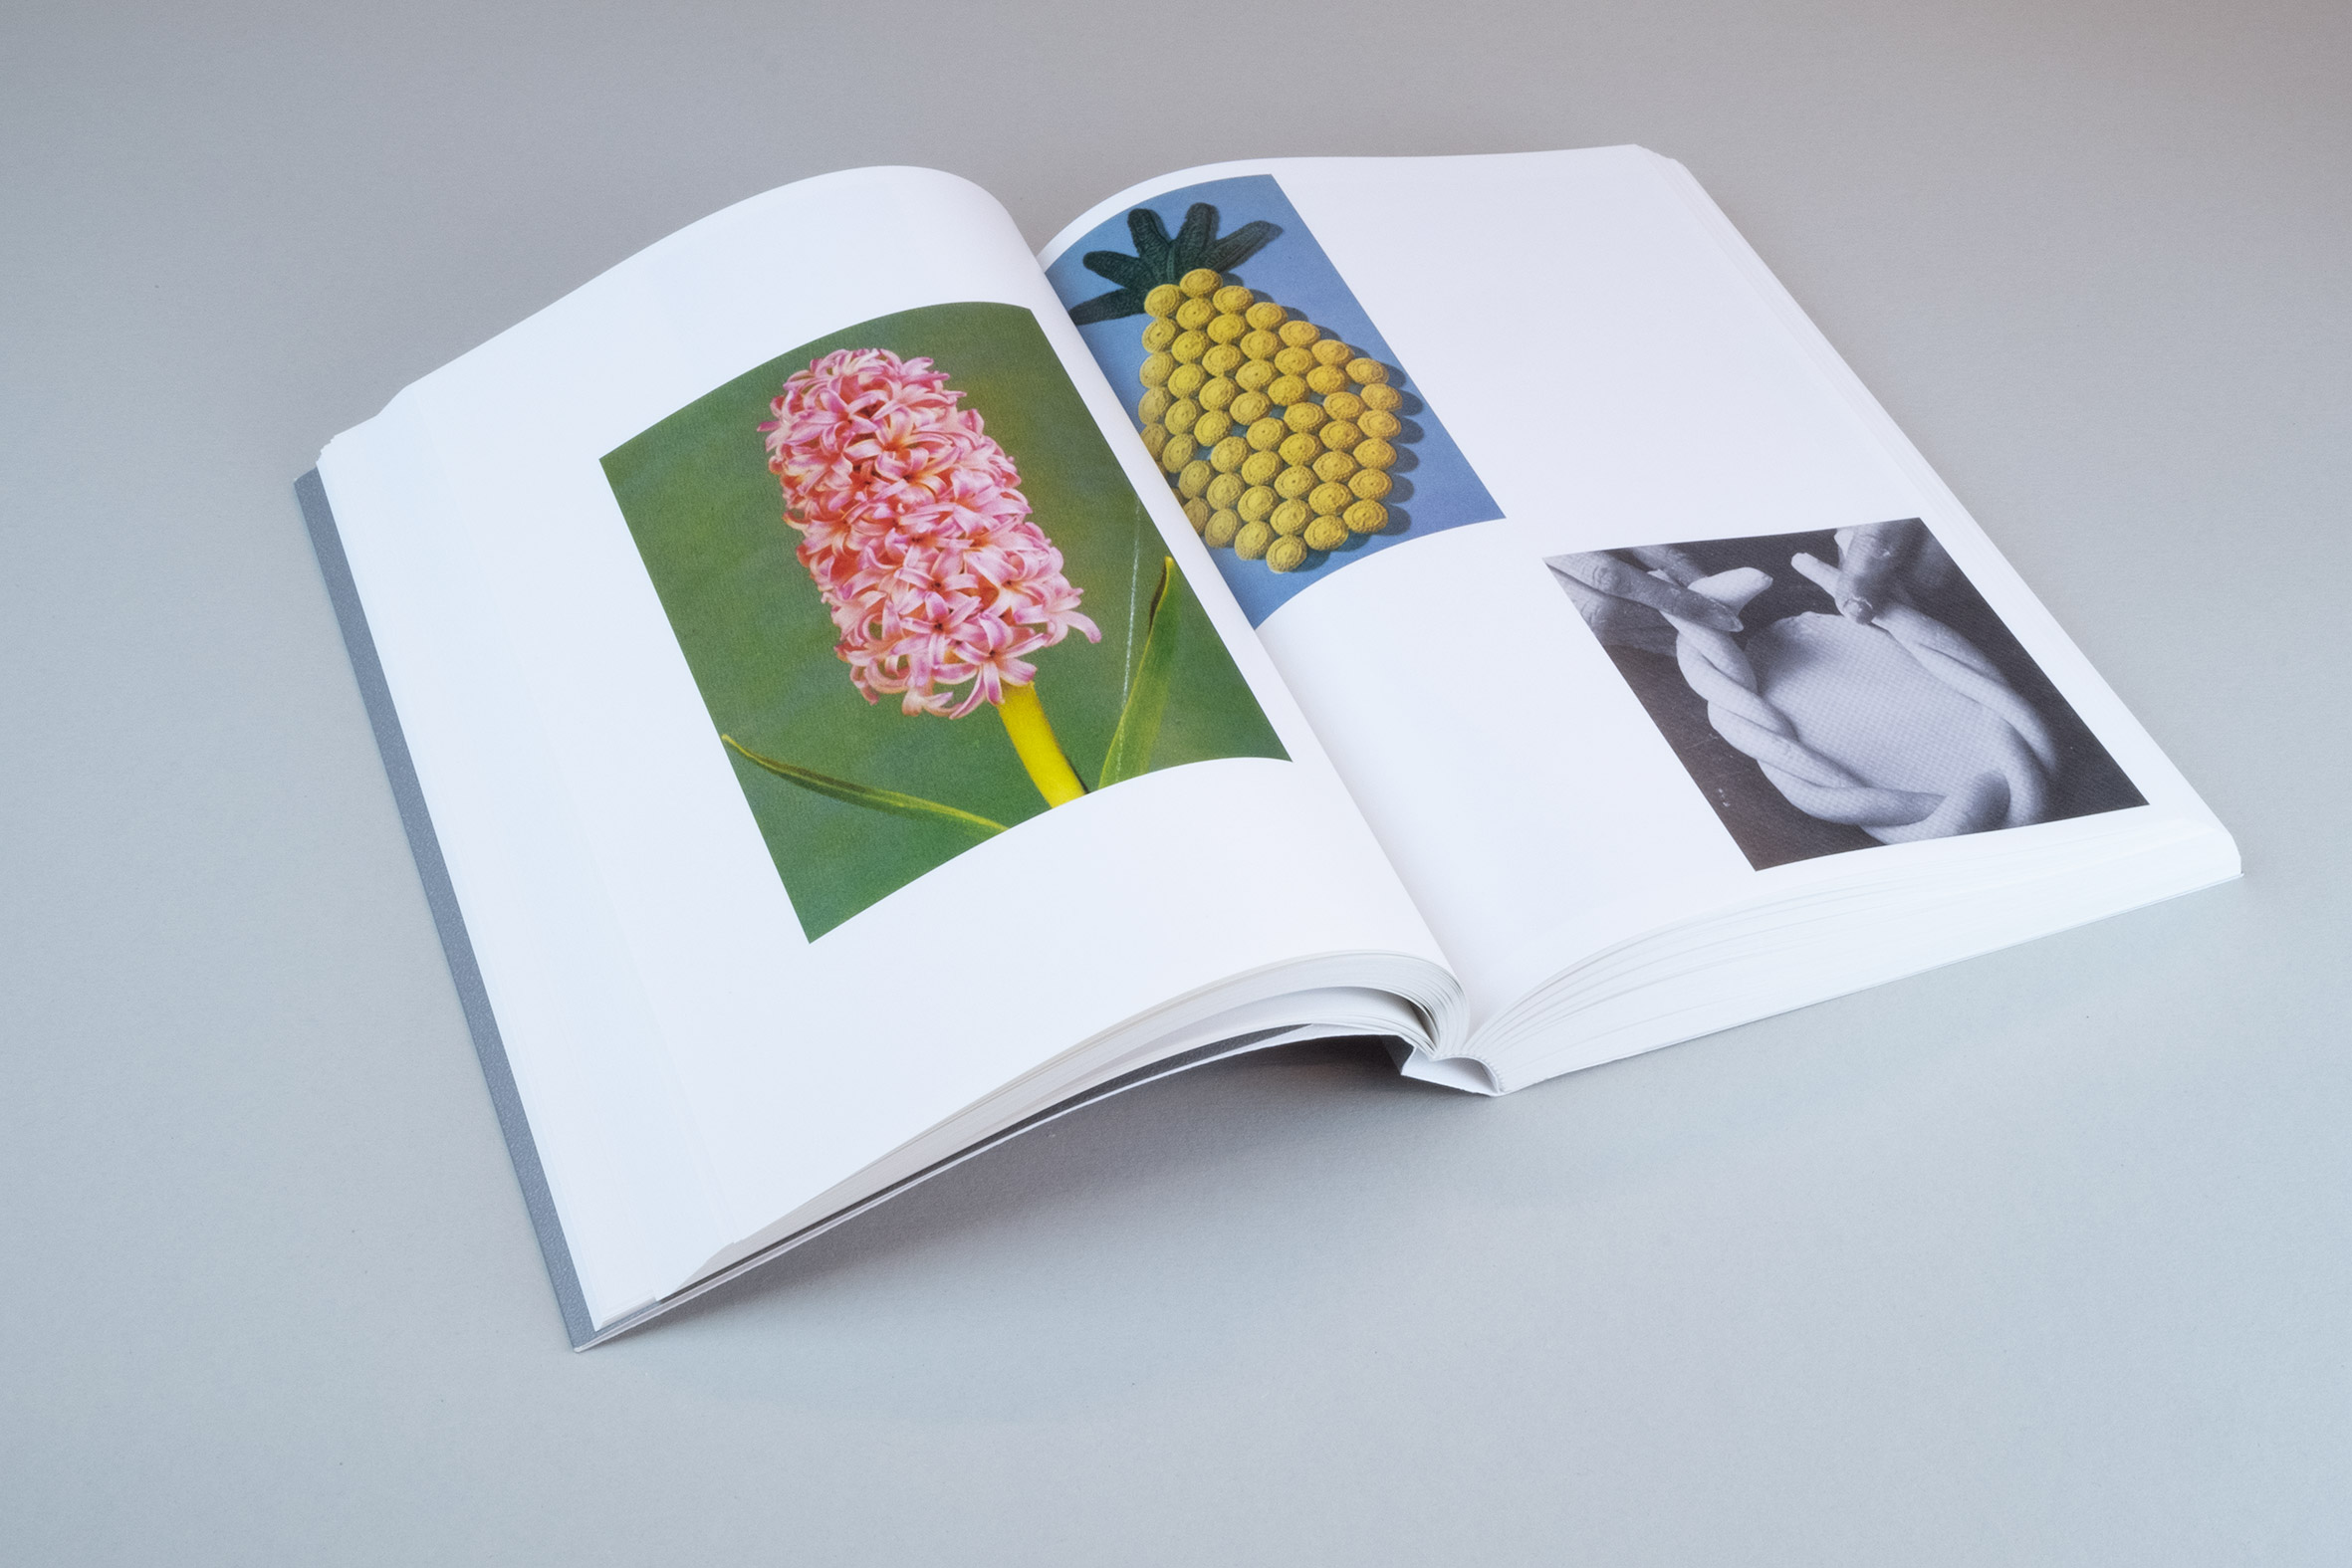 APE#112_RuthvanBeeck_How To Do The Flowers_ISBN9789490800871_19.jpg